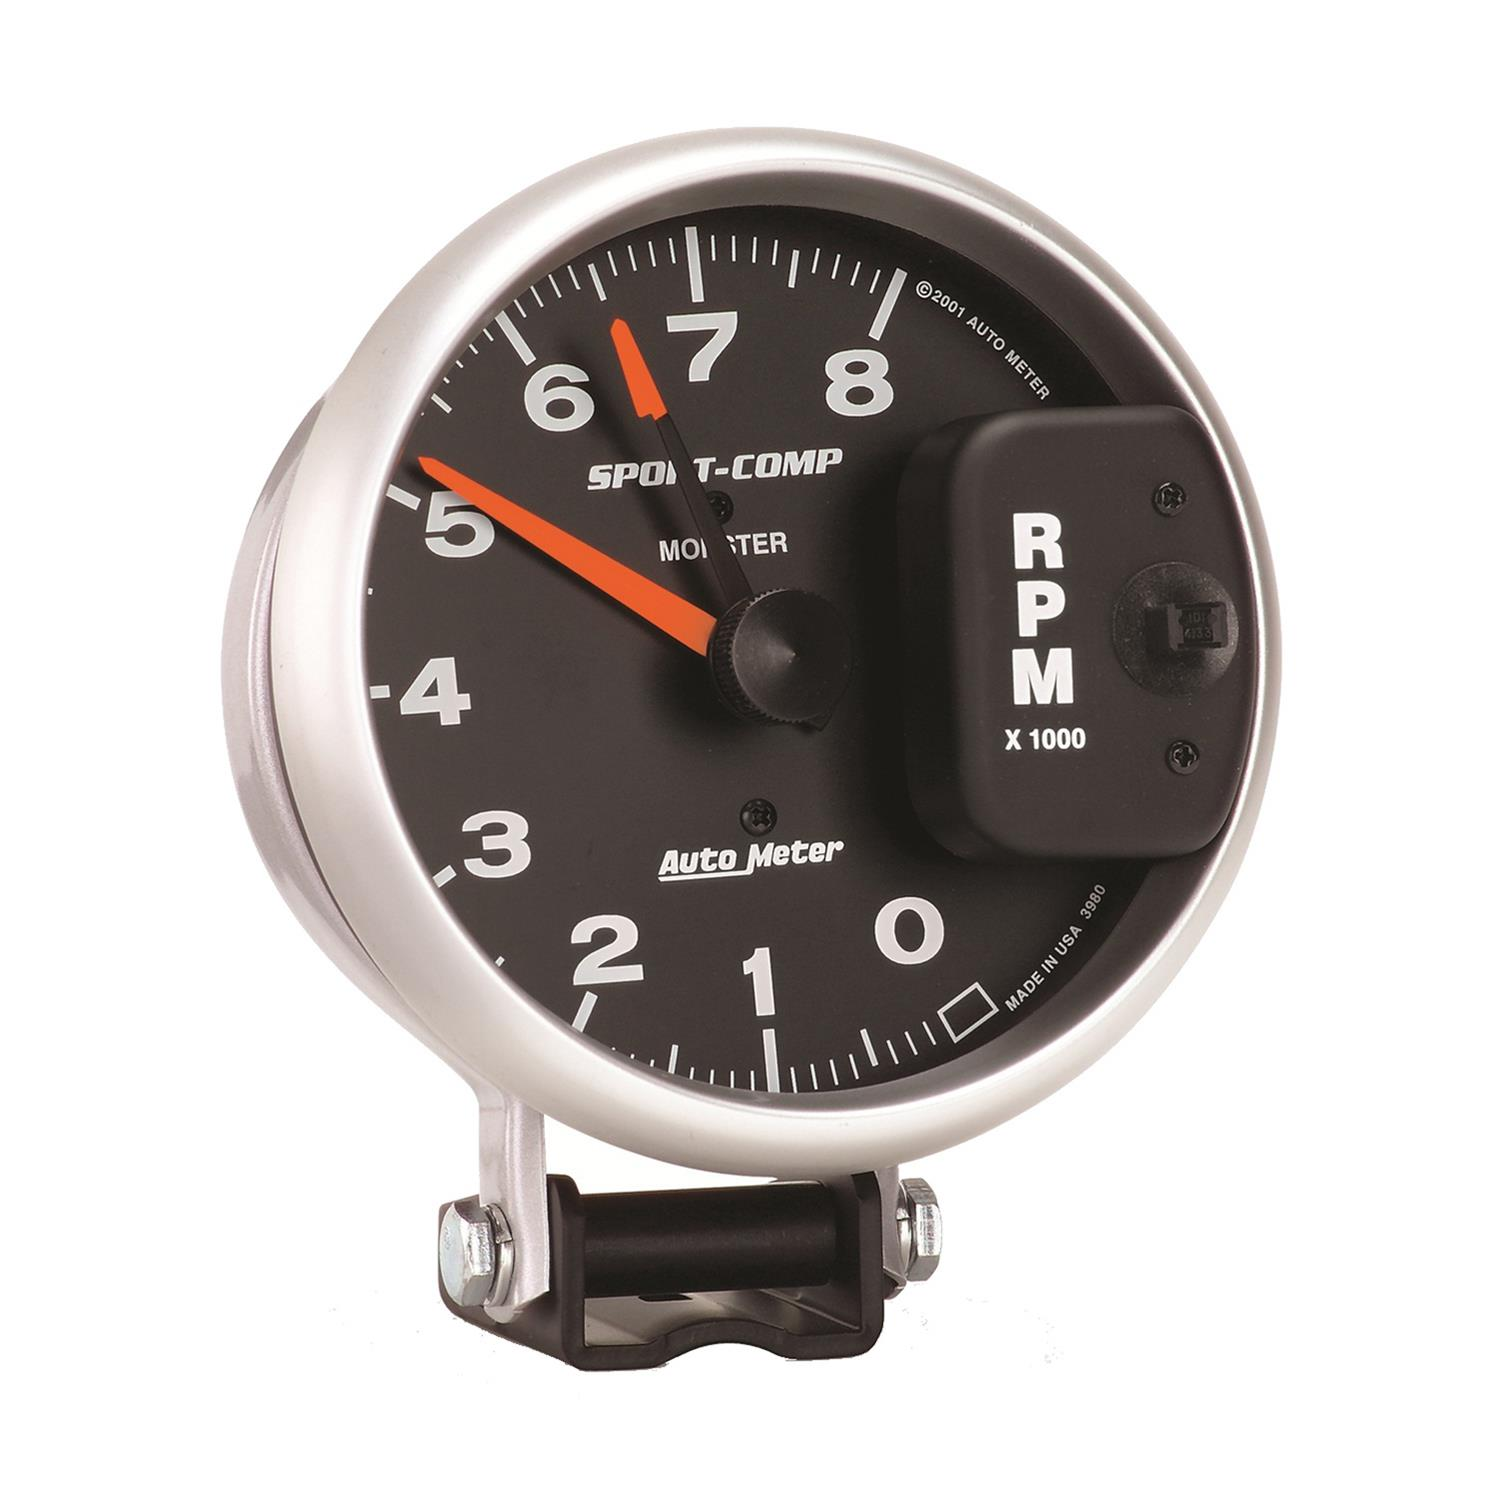 autometer sport comp monster tachometer 0 8 000 5 dia. Black Bedroom Furniture Sets. Home Design Ideas